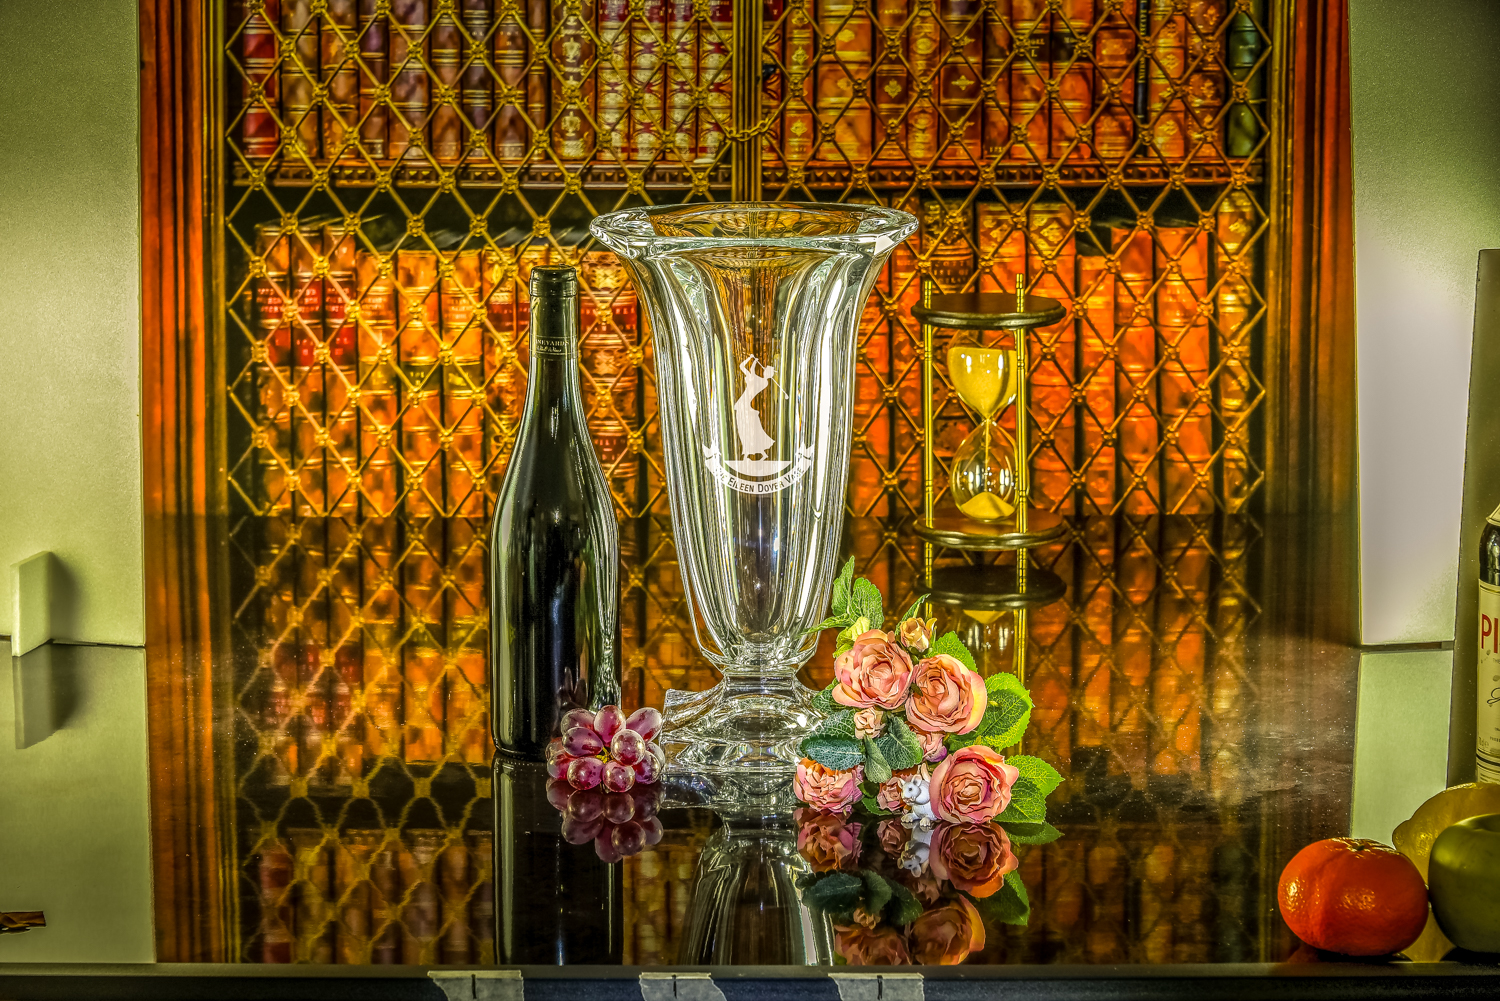 Majestic Crystal 2019 Brochure photos - Etna Vase with bottle and flowers